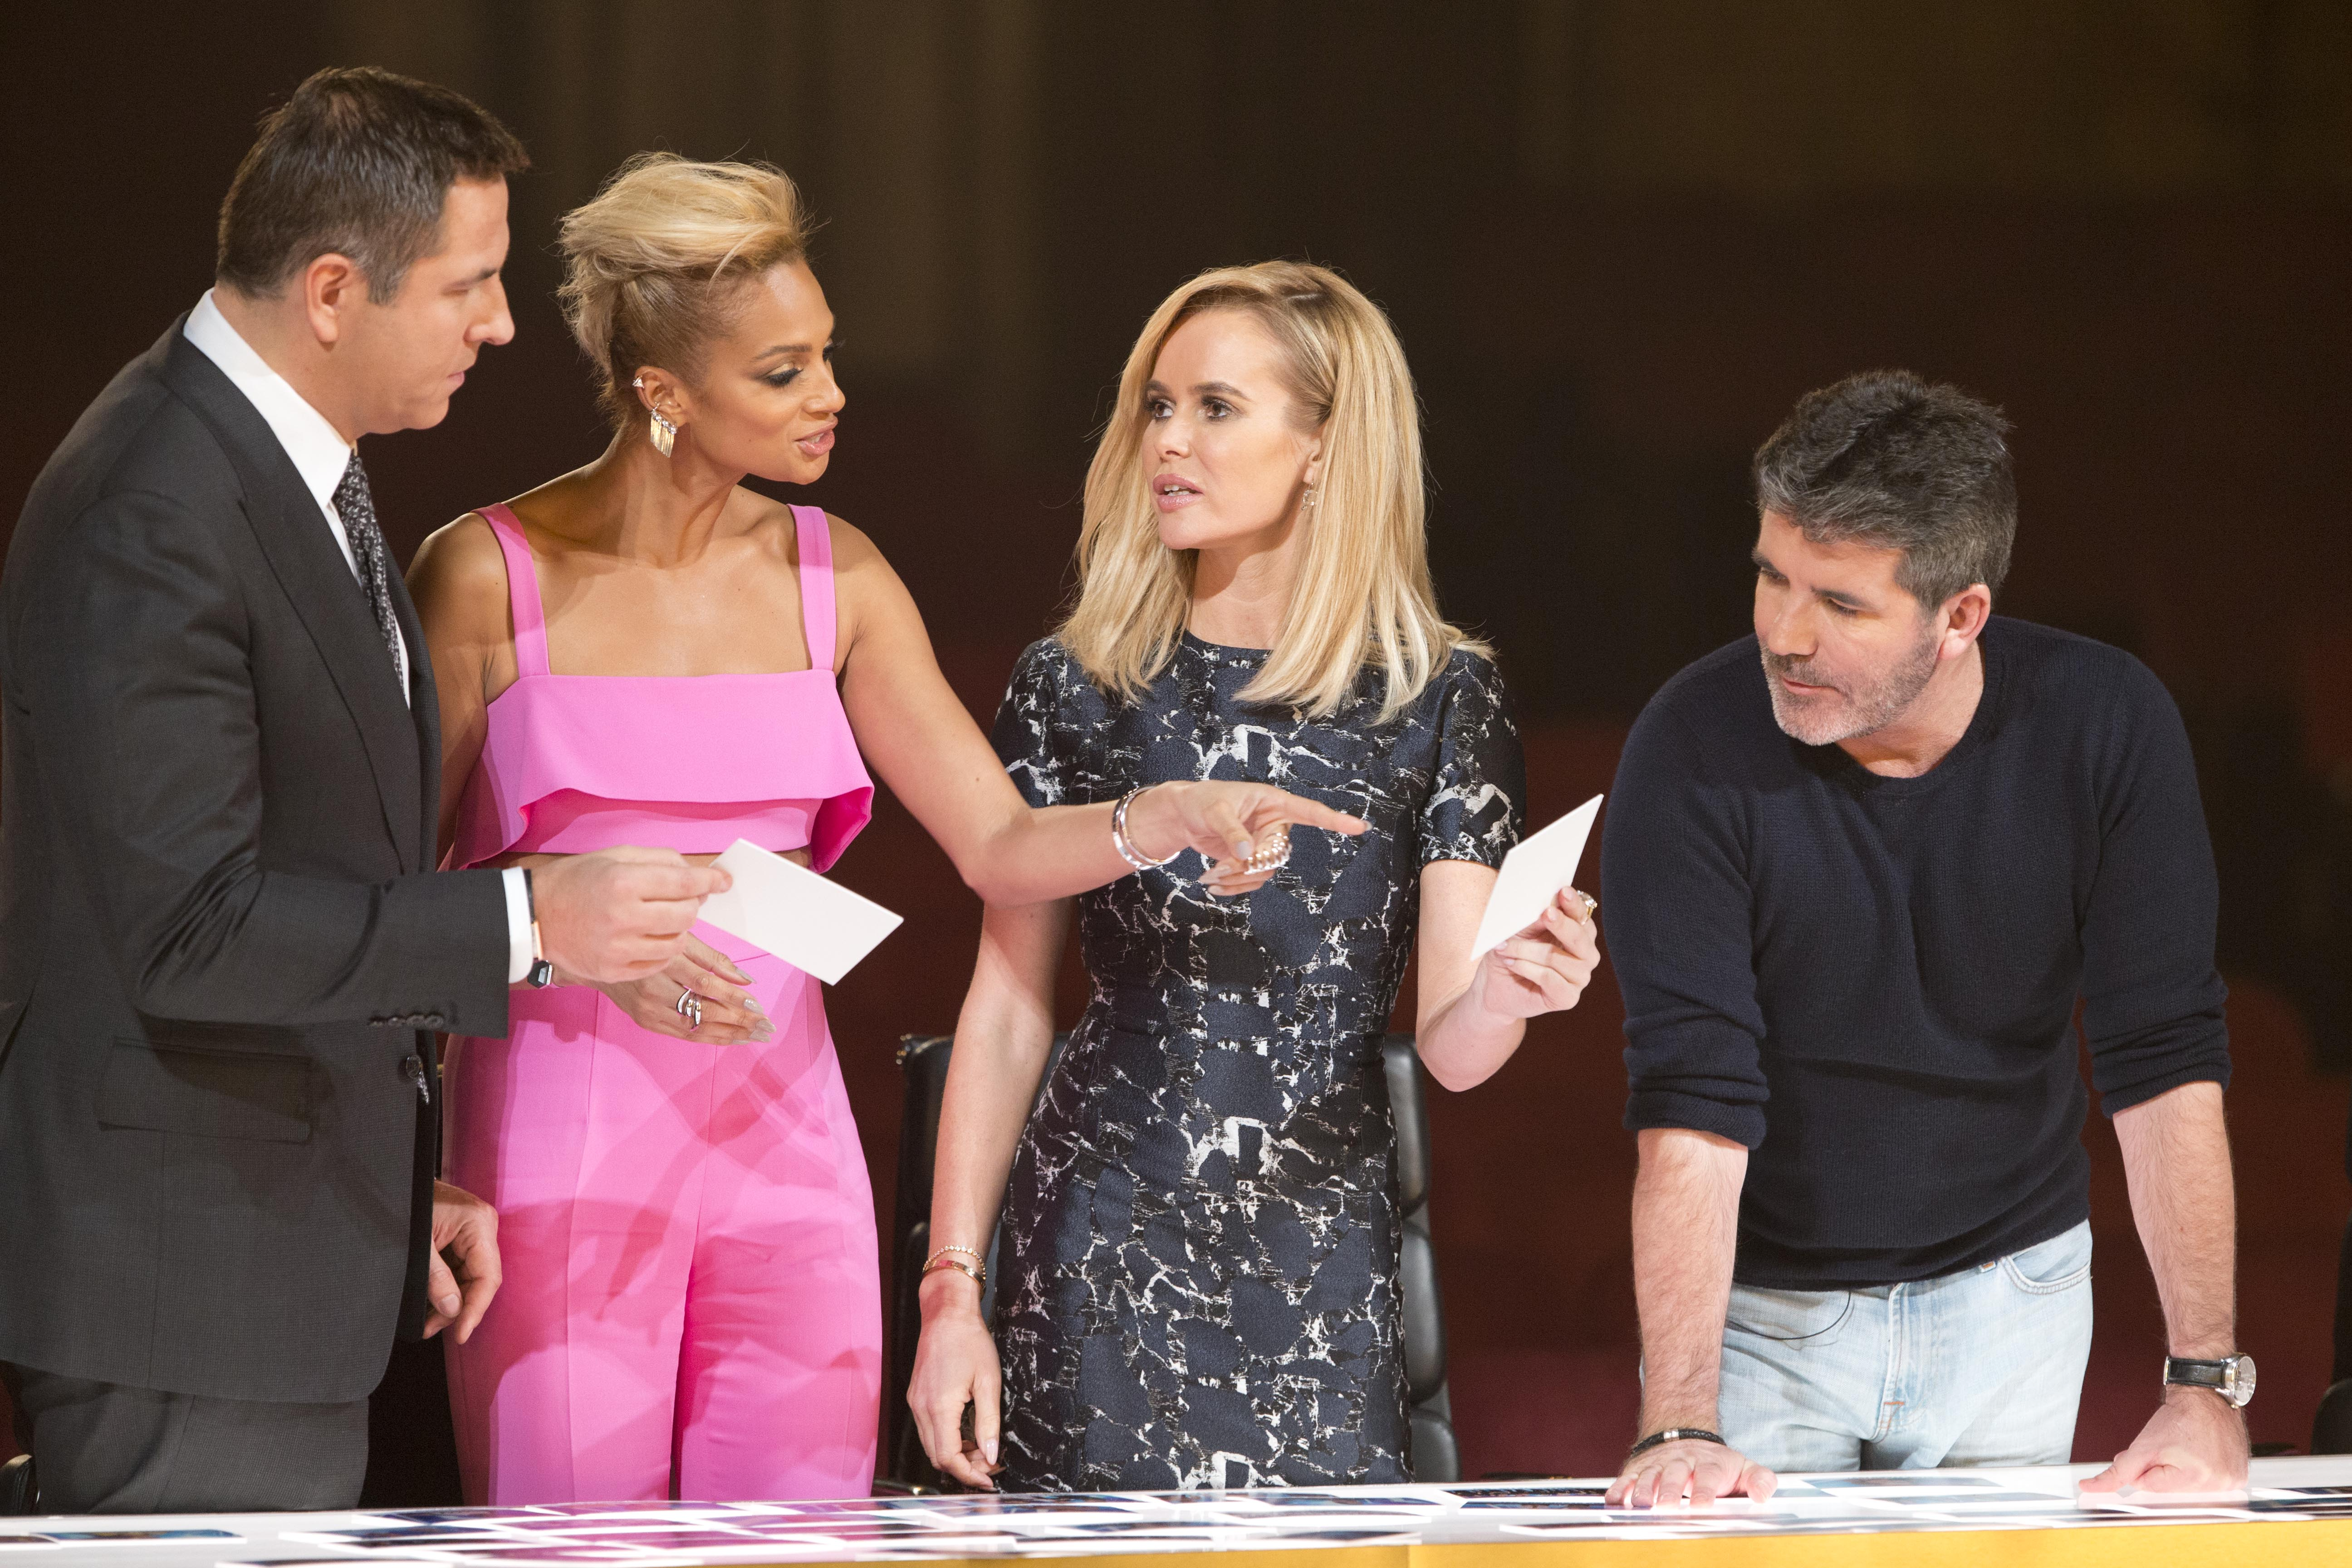 A THAMES/SYCO TV PRODUCTION FOR ITV PICTURE SHOWS: DELIBERATION UNDER STRICT EMBARGO UNTIL 00.01 ON SATURDAY 21ST MAY 2016. BRITAIN'S GOT TALENT This Spring, the one and only BritainÕs Got Talent is back and celebrating 10 triumphant years of talent. The dream team of judges - Simon Cowell, Amanda Holden, Alesha Dixon and David Walliams - once again take their places on the panel, in search of the most astonishing and exhilarating talent around. They are joined by the nationÕs favourite TV duo Ant & Dec, who will be on hand to encourage, congratulate and commiserate the variety of acts whilst guiding the audience through the auditions.